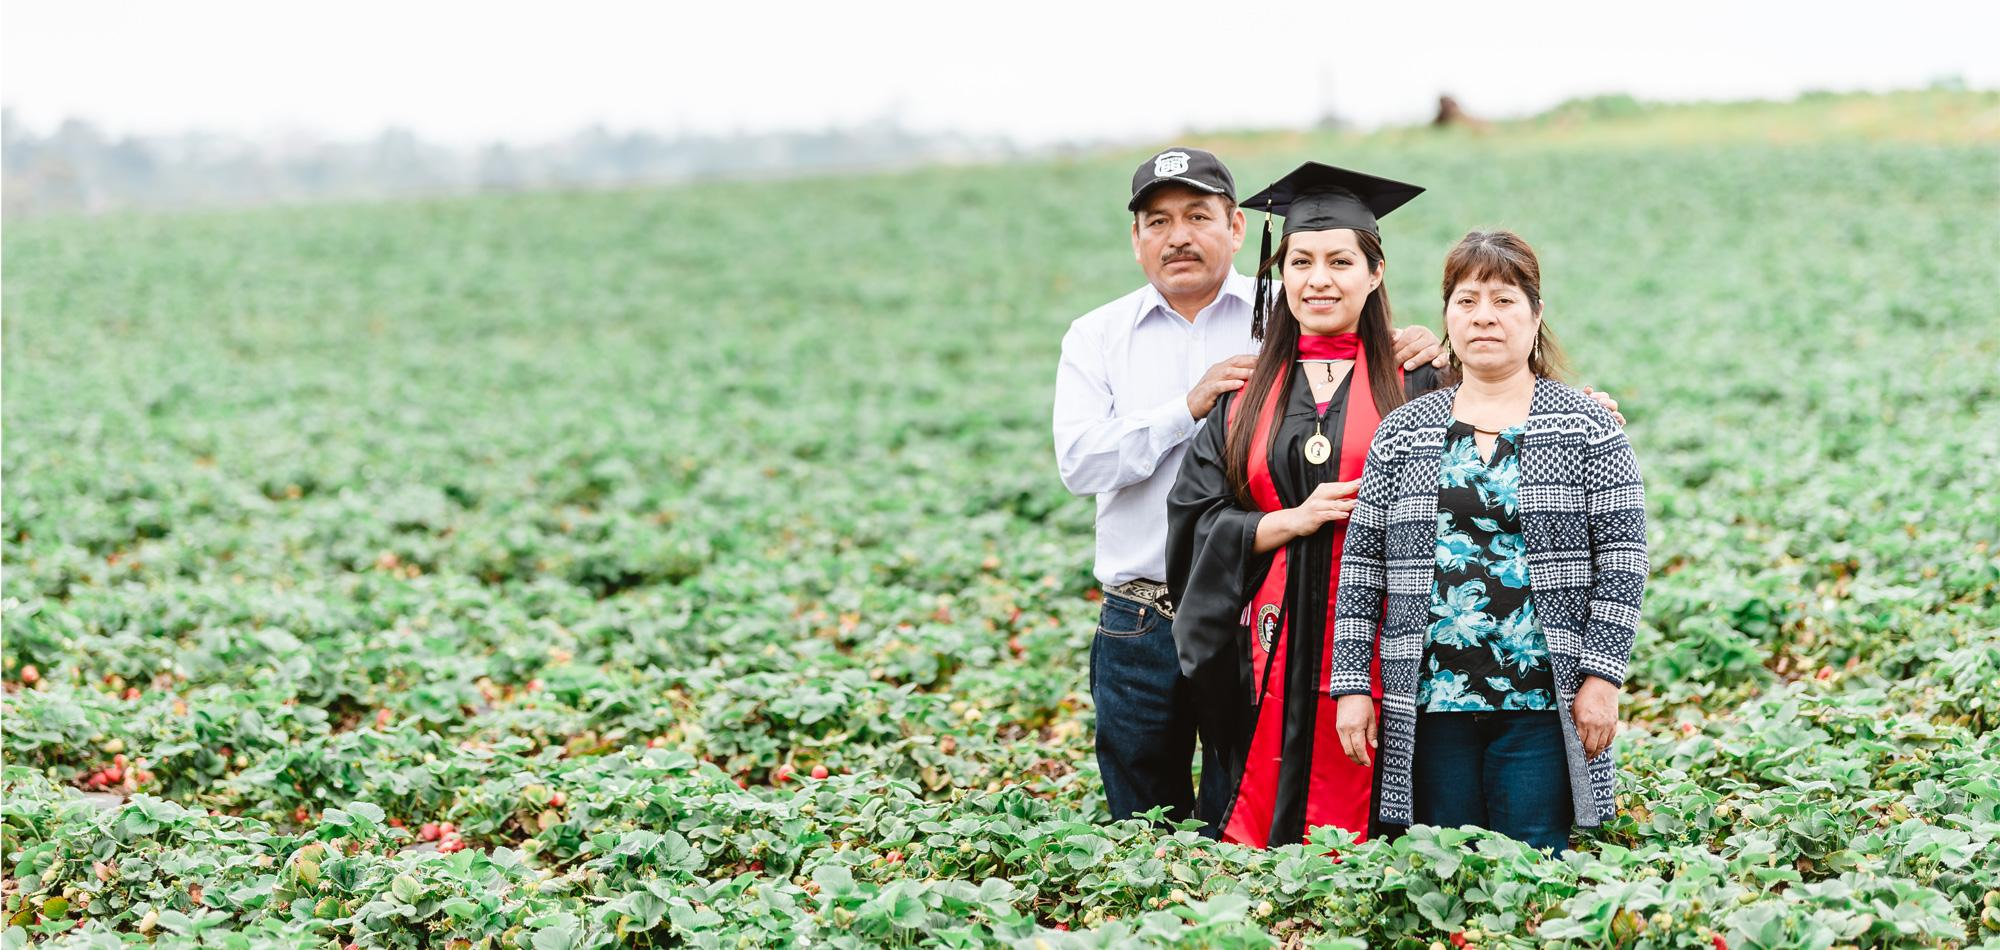 Erica Alfaro and her parents standing in a strawberry field